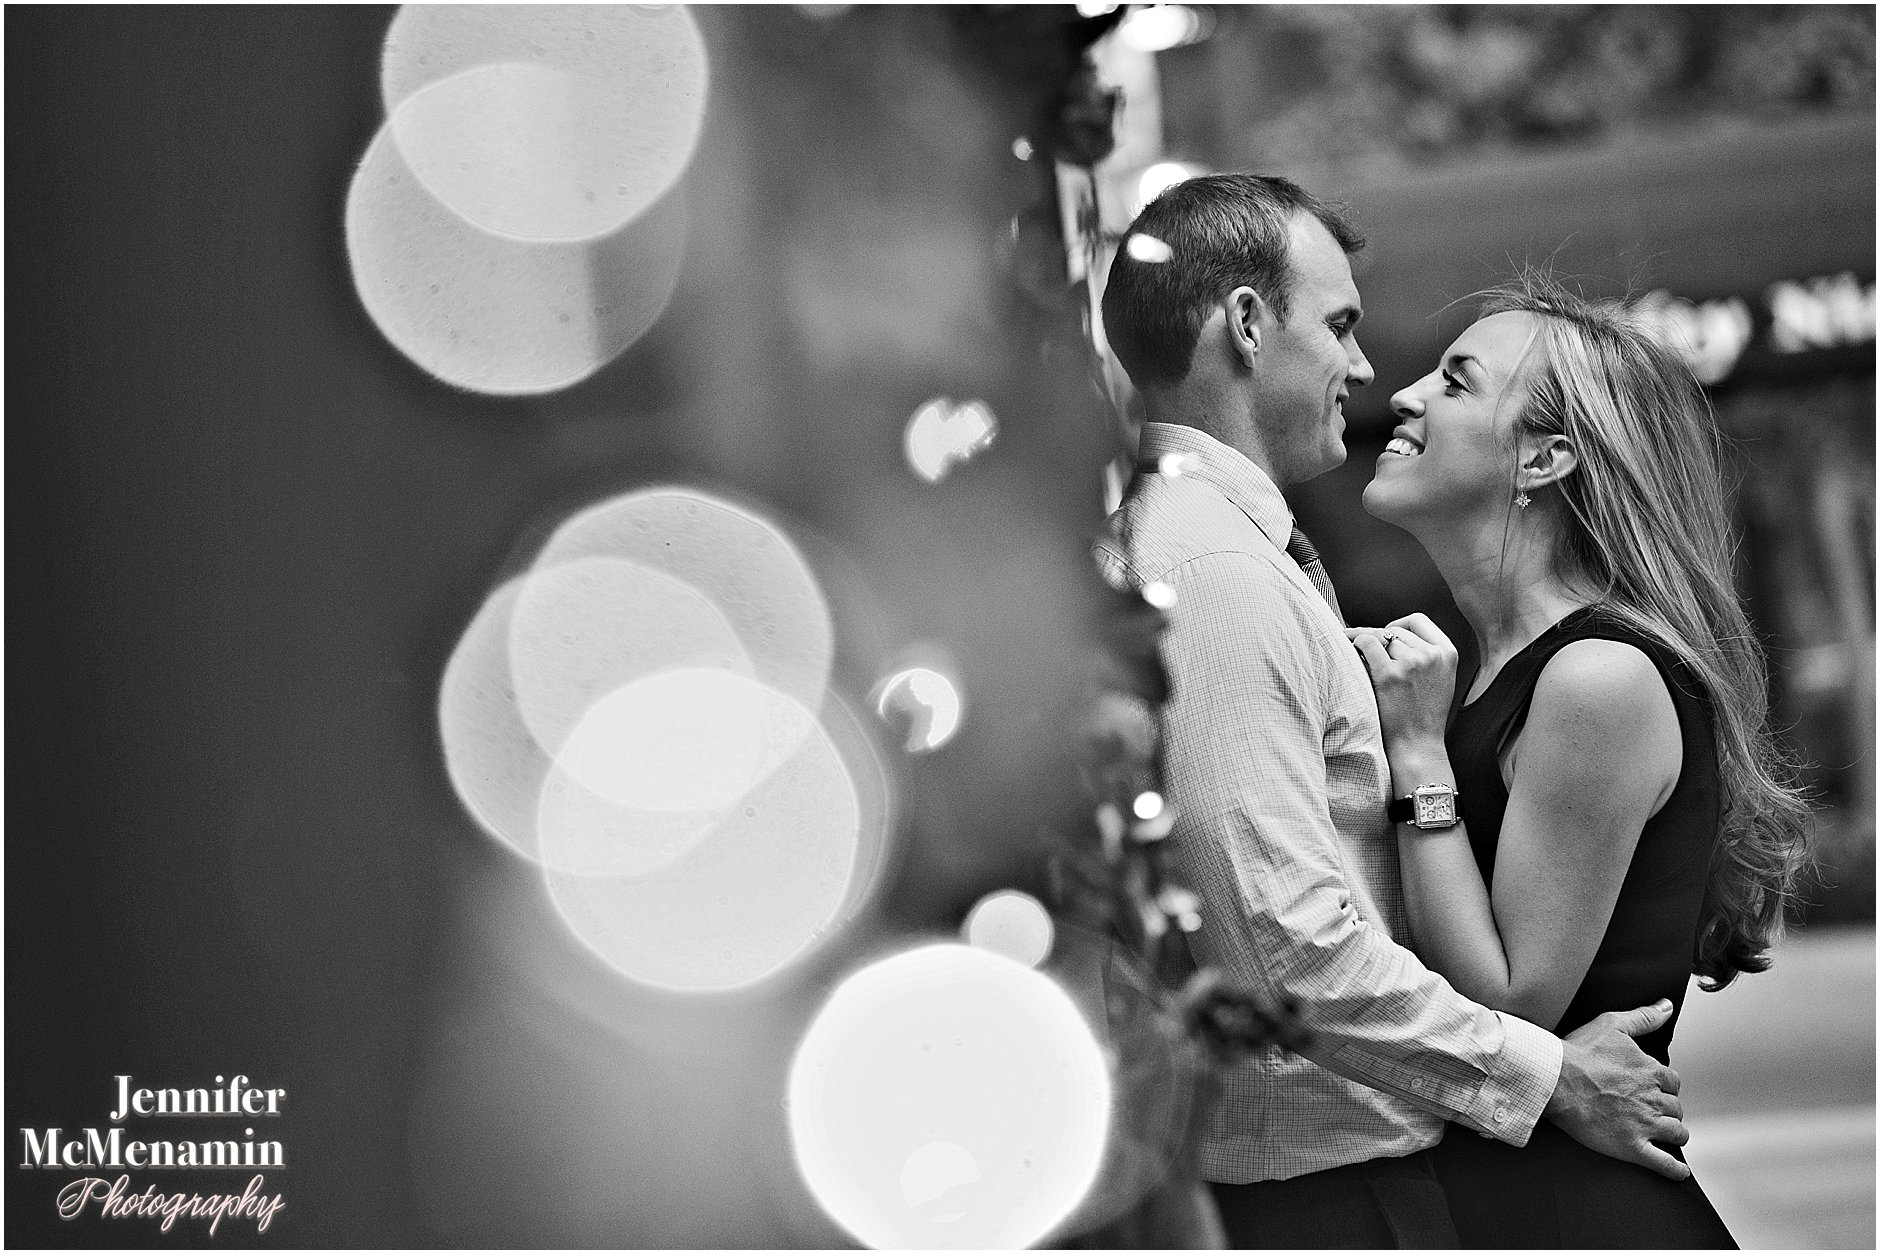 014-jennifer-mcmenamin-photography-nyc-engagement-photos_0012